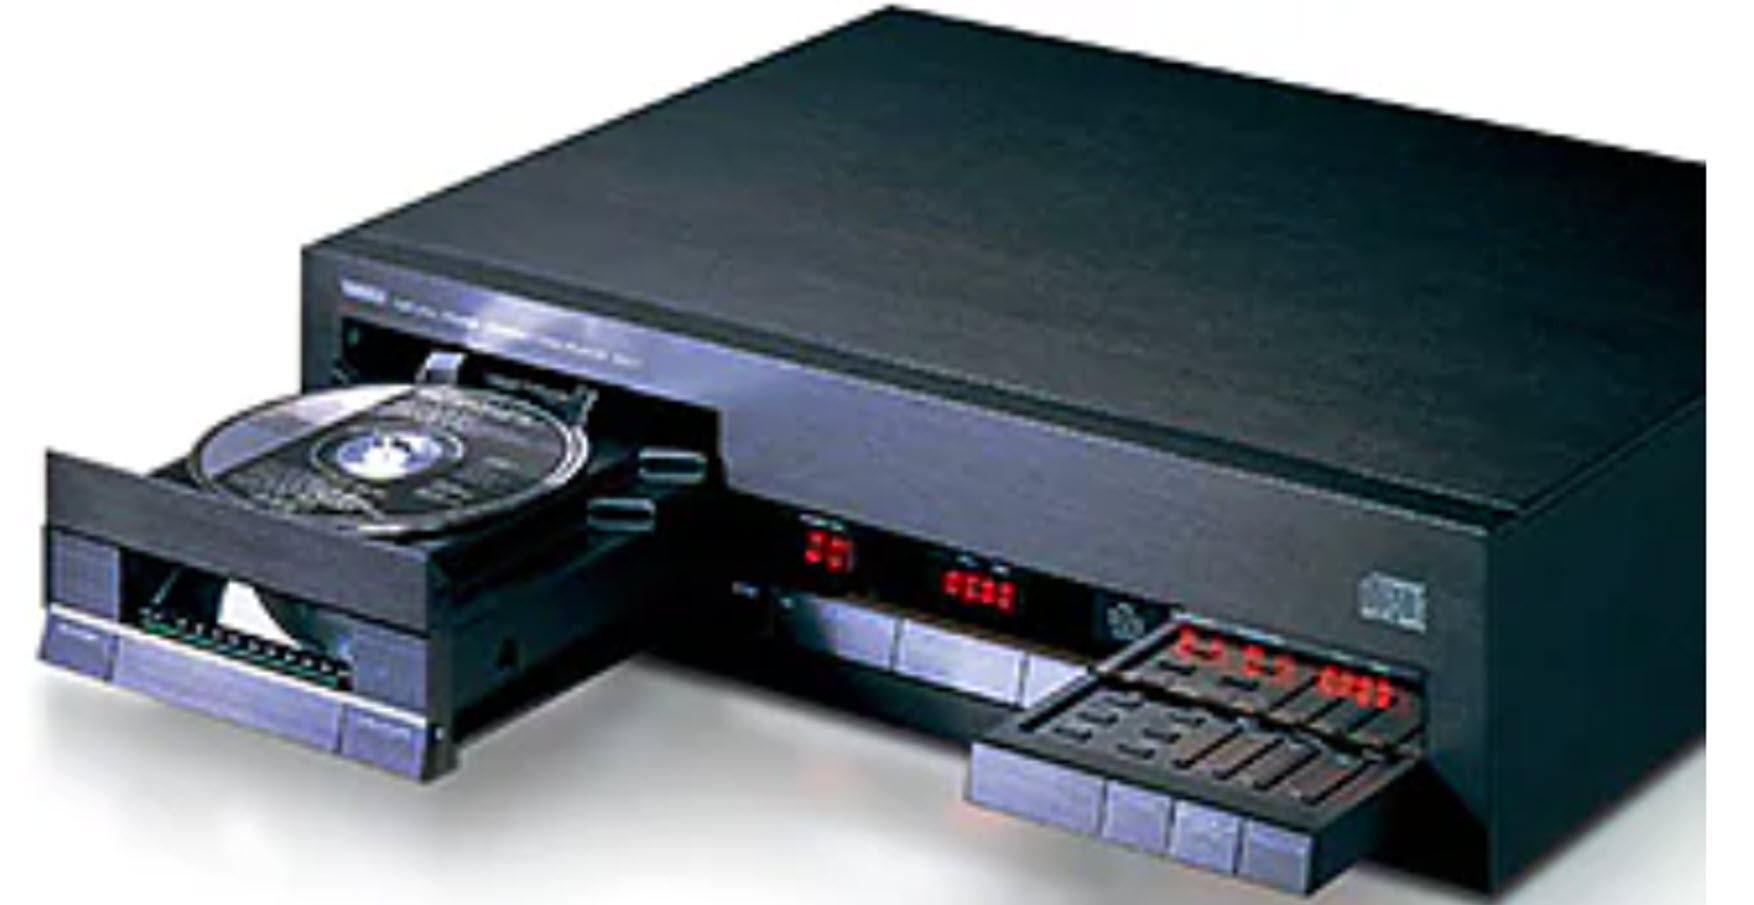 Closeup of CD player with drawer open.